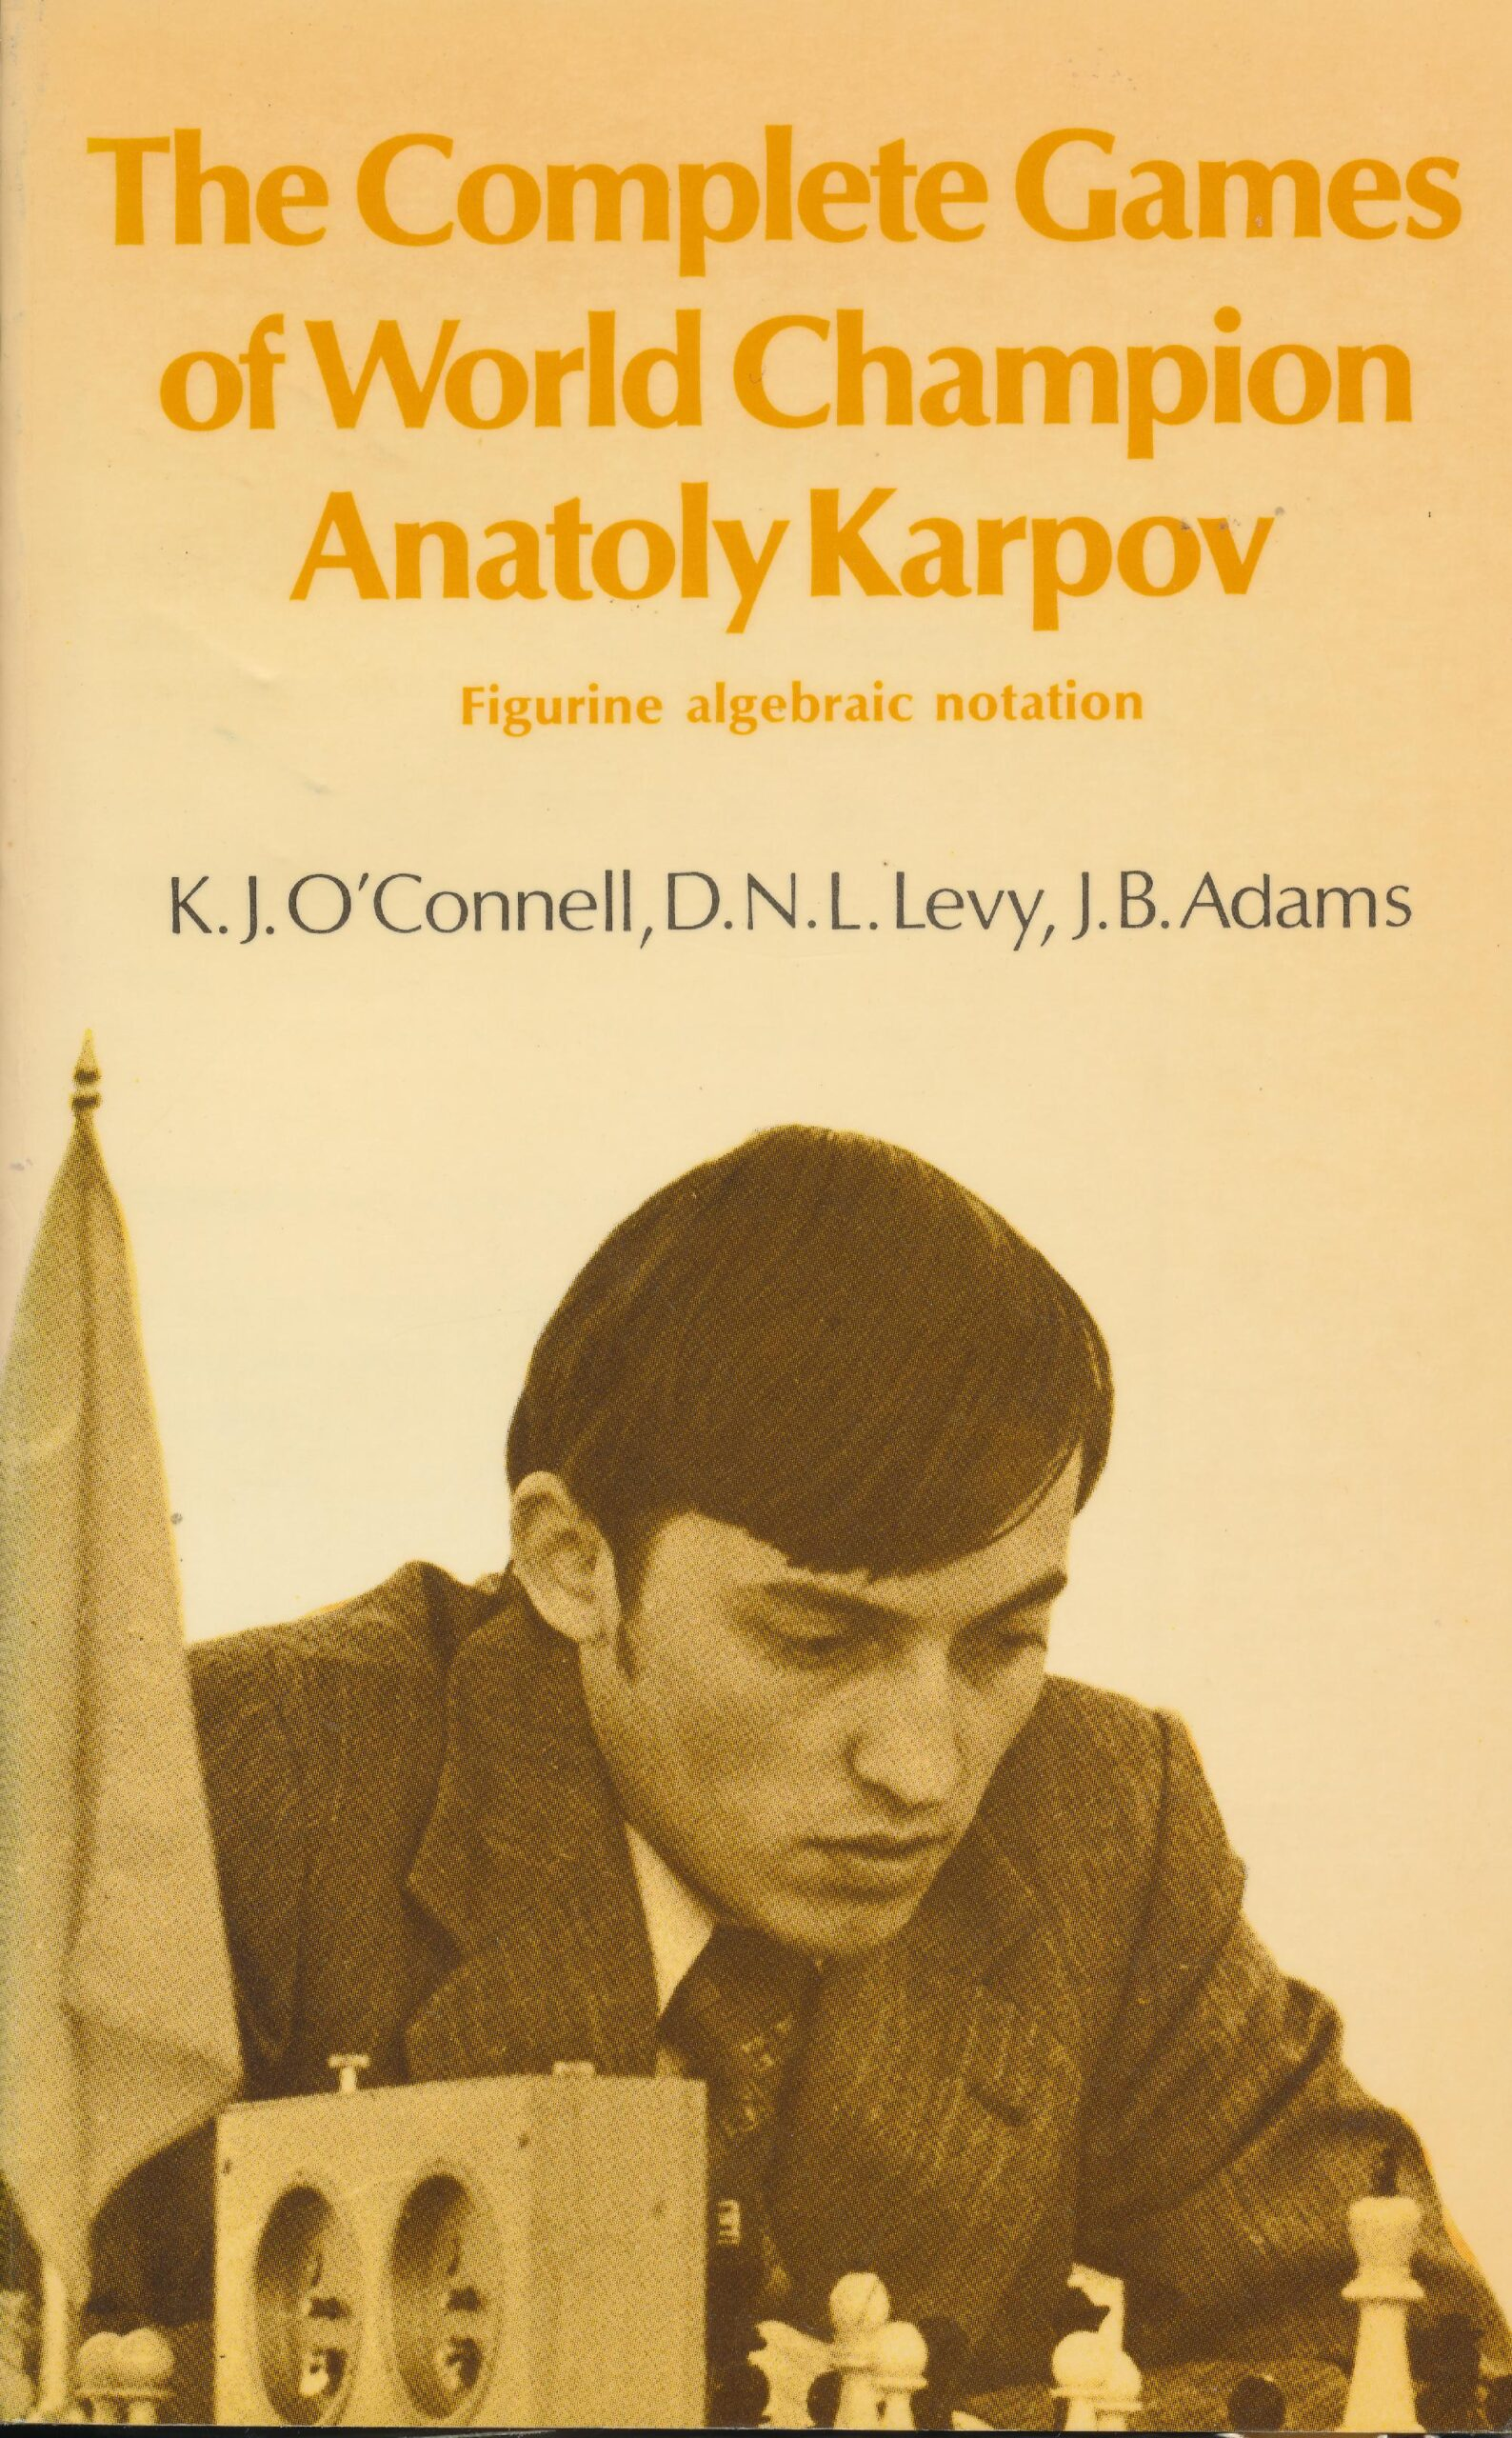 The Complete Games of World Champion Anatoly Karpov, Jimmy Adams, 1976